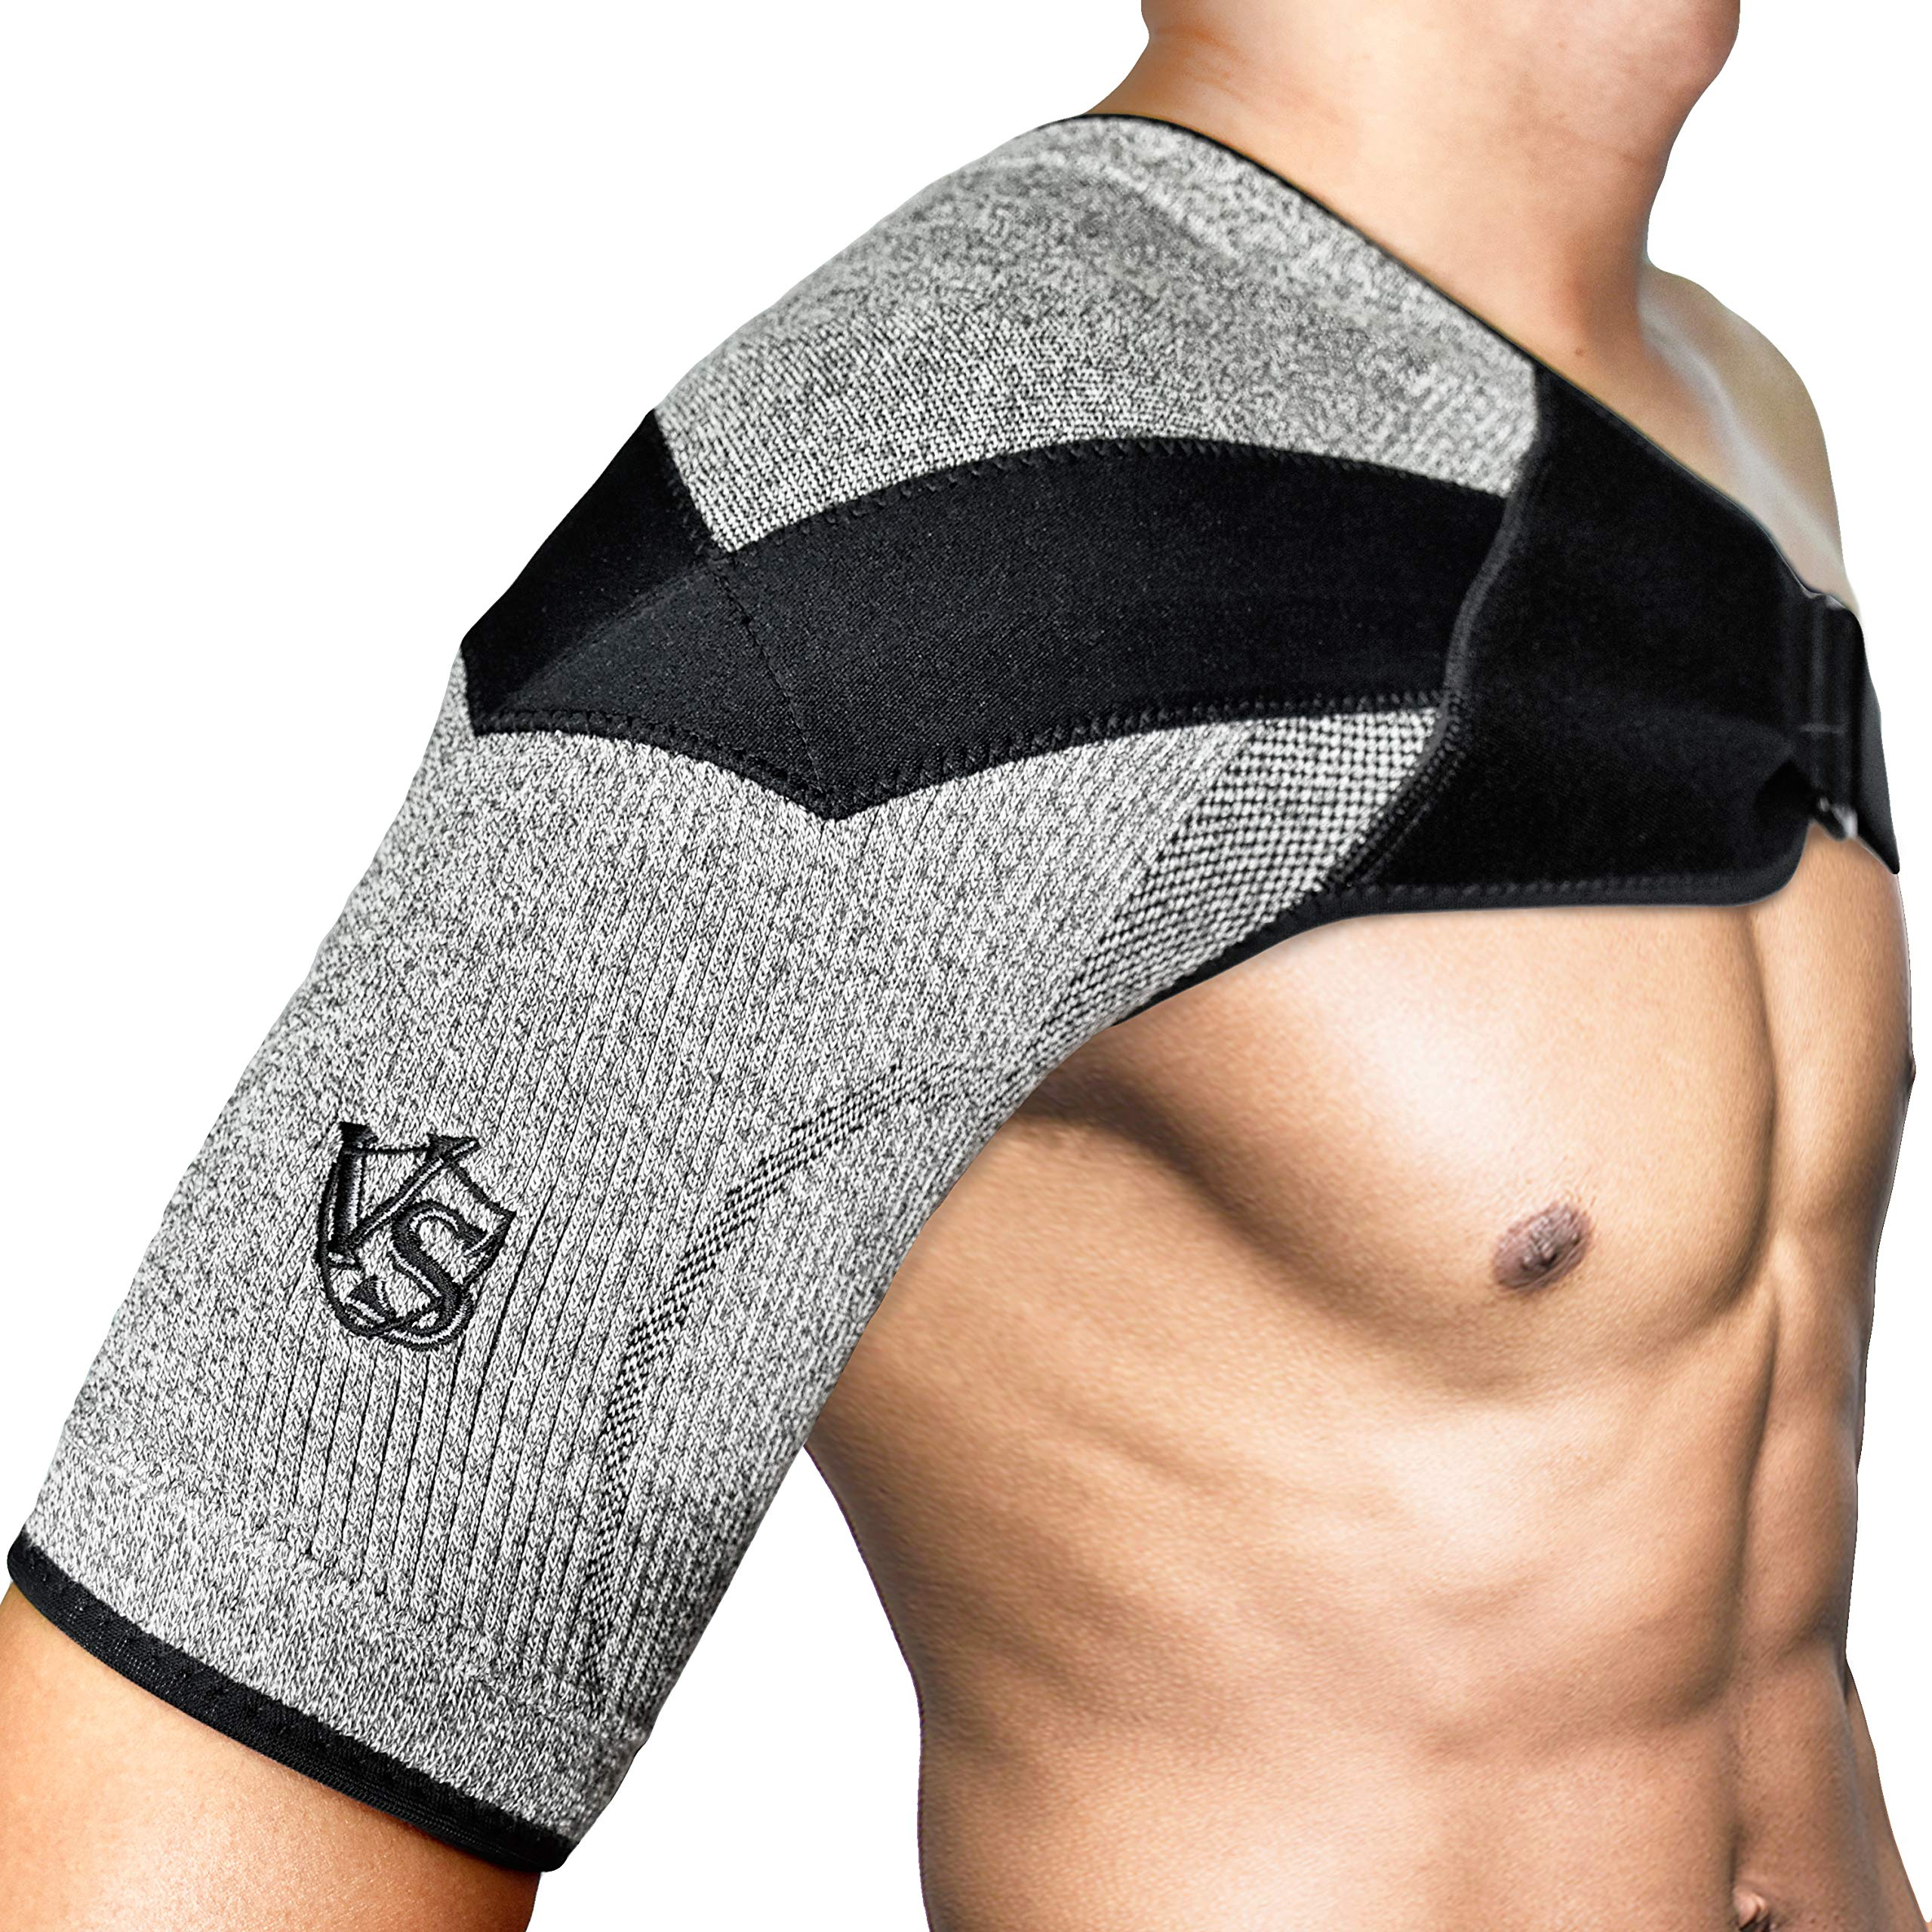 Vital Salveo-Shoulder Compression Brace with Support and Stability,Breathable and Light for Shoulder Pain and Prevent Injuries,Dislocated AC Joint,Rotator Cuff,Tendinitis,Labrum Tear-XXL(1PC)